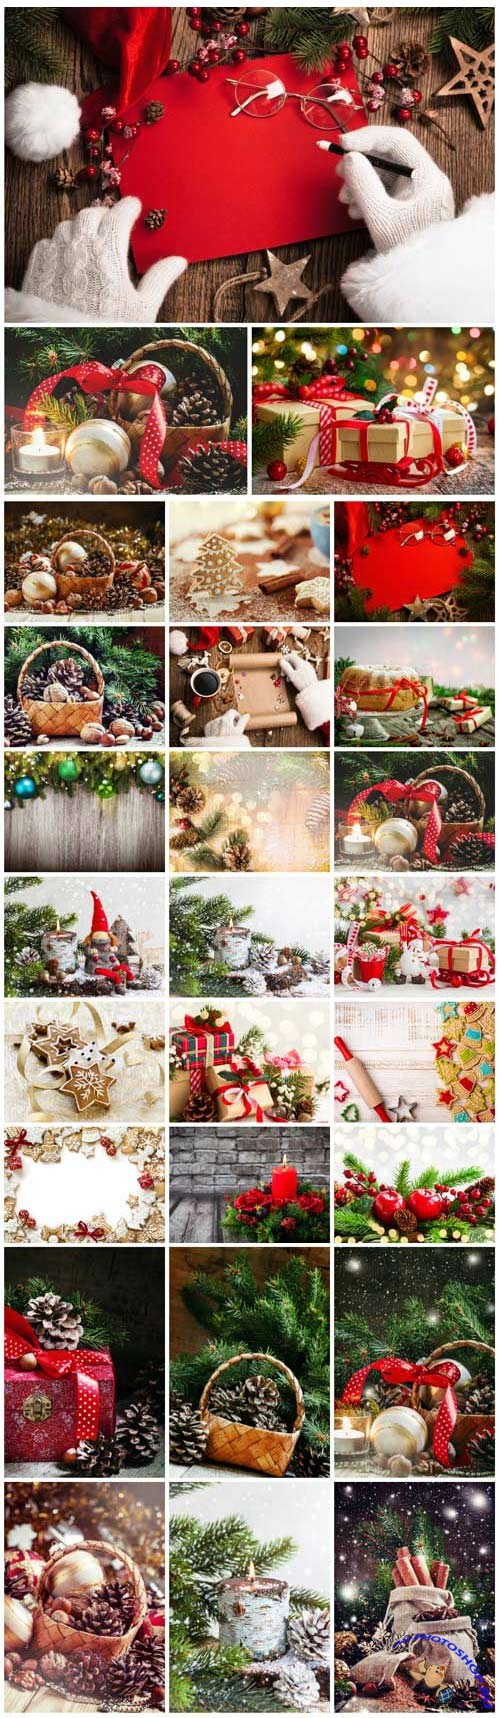 New Year and Christmas stock photos №27